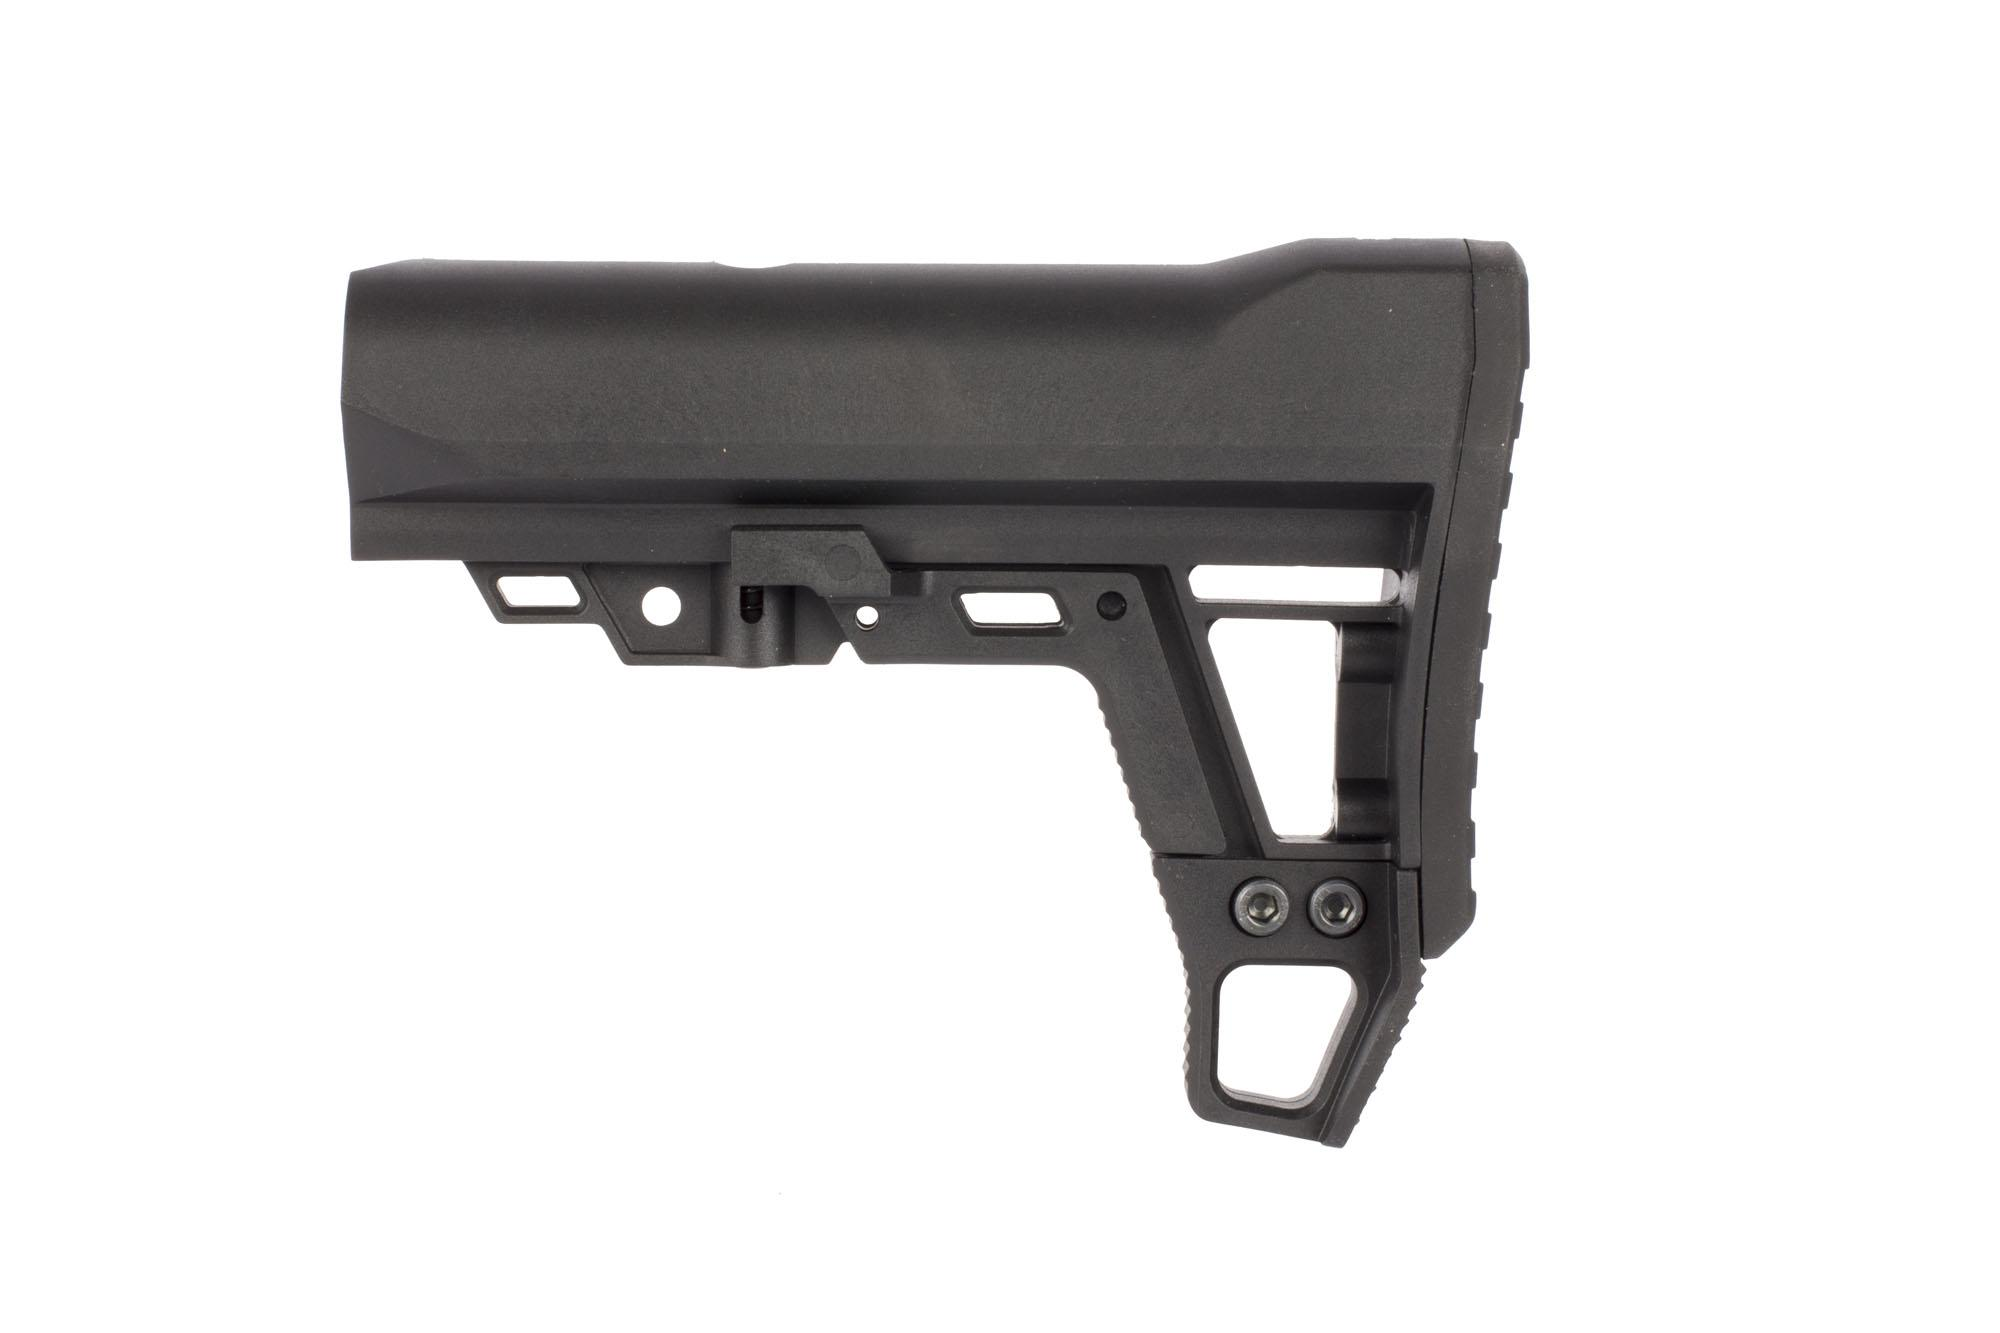 The Aimsports AMS AR15 collapsible carbine stock is made from durable and lightweight polymer